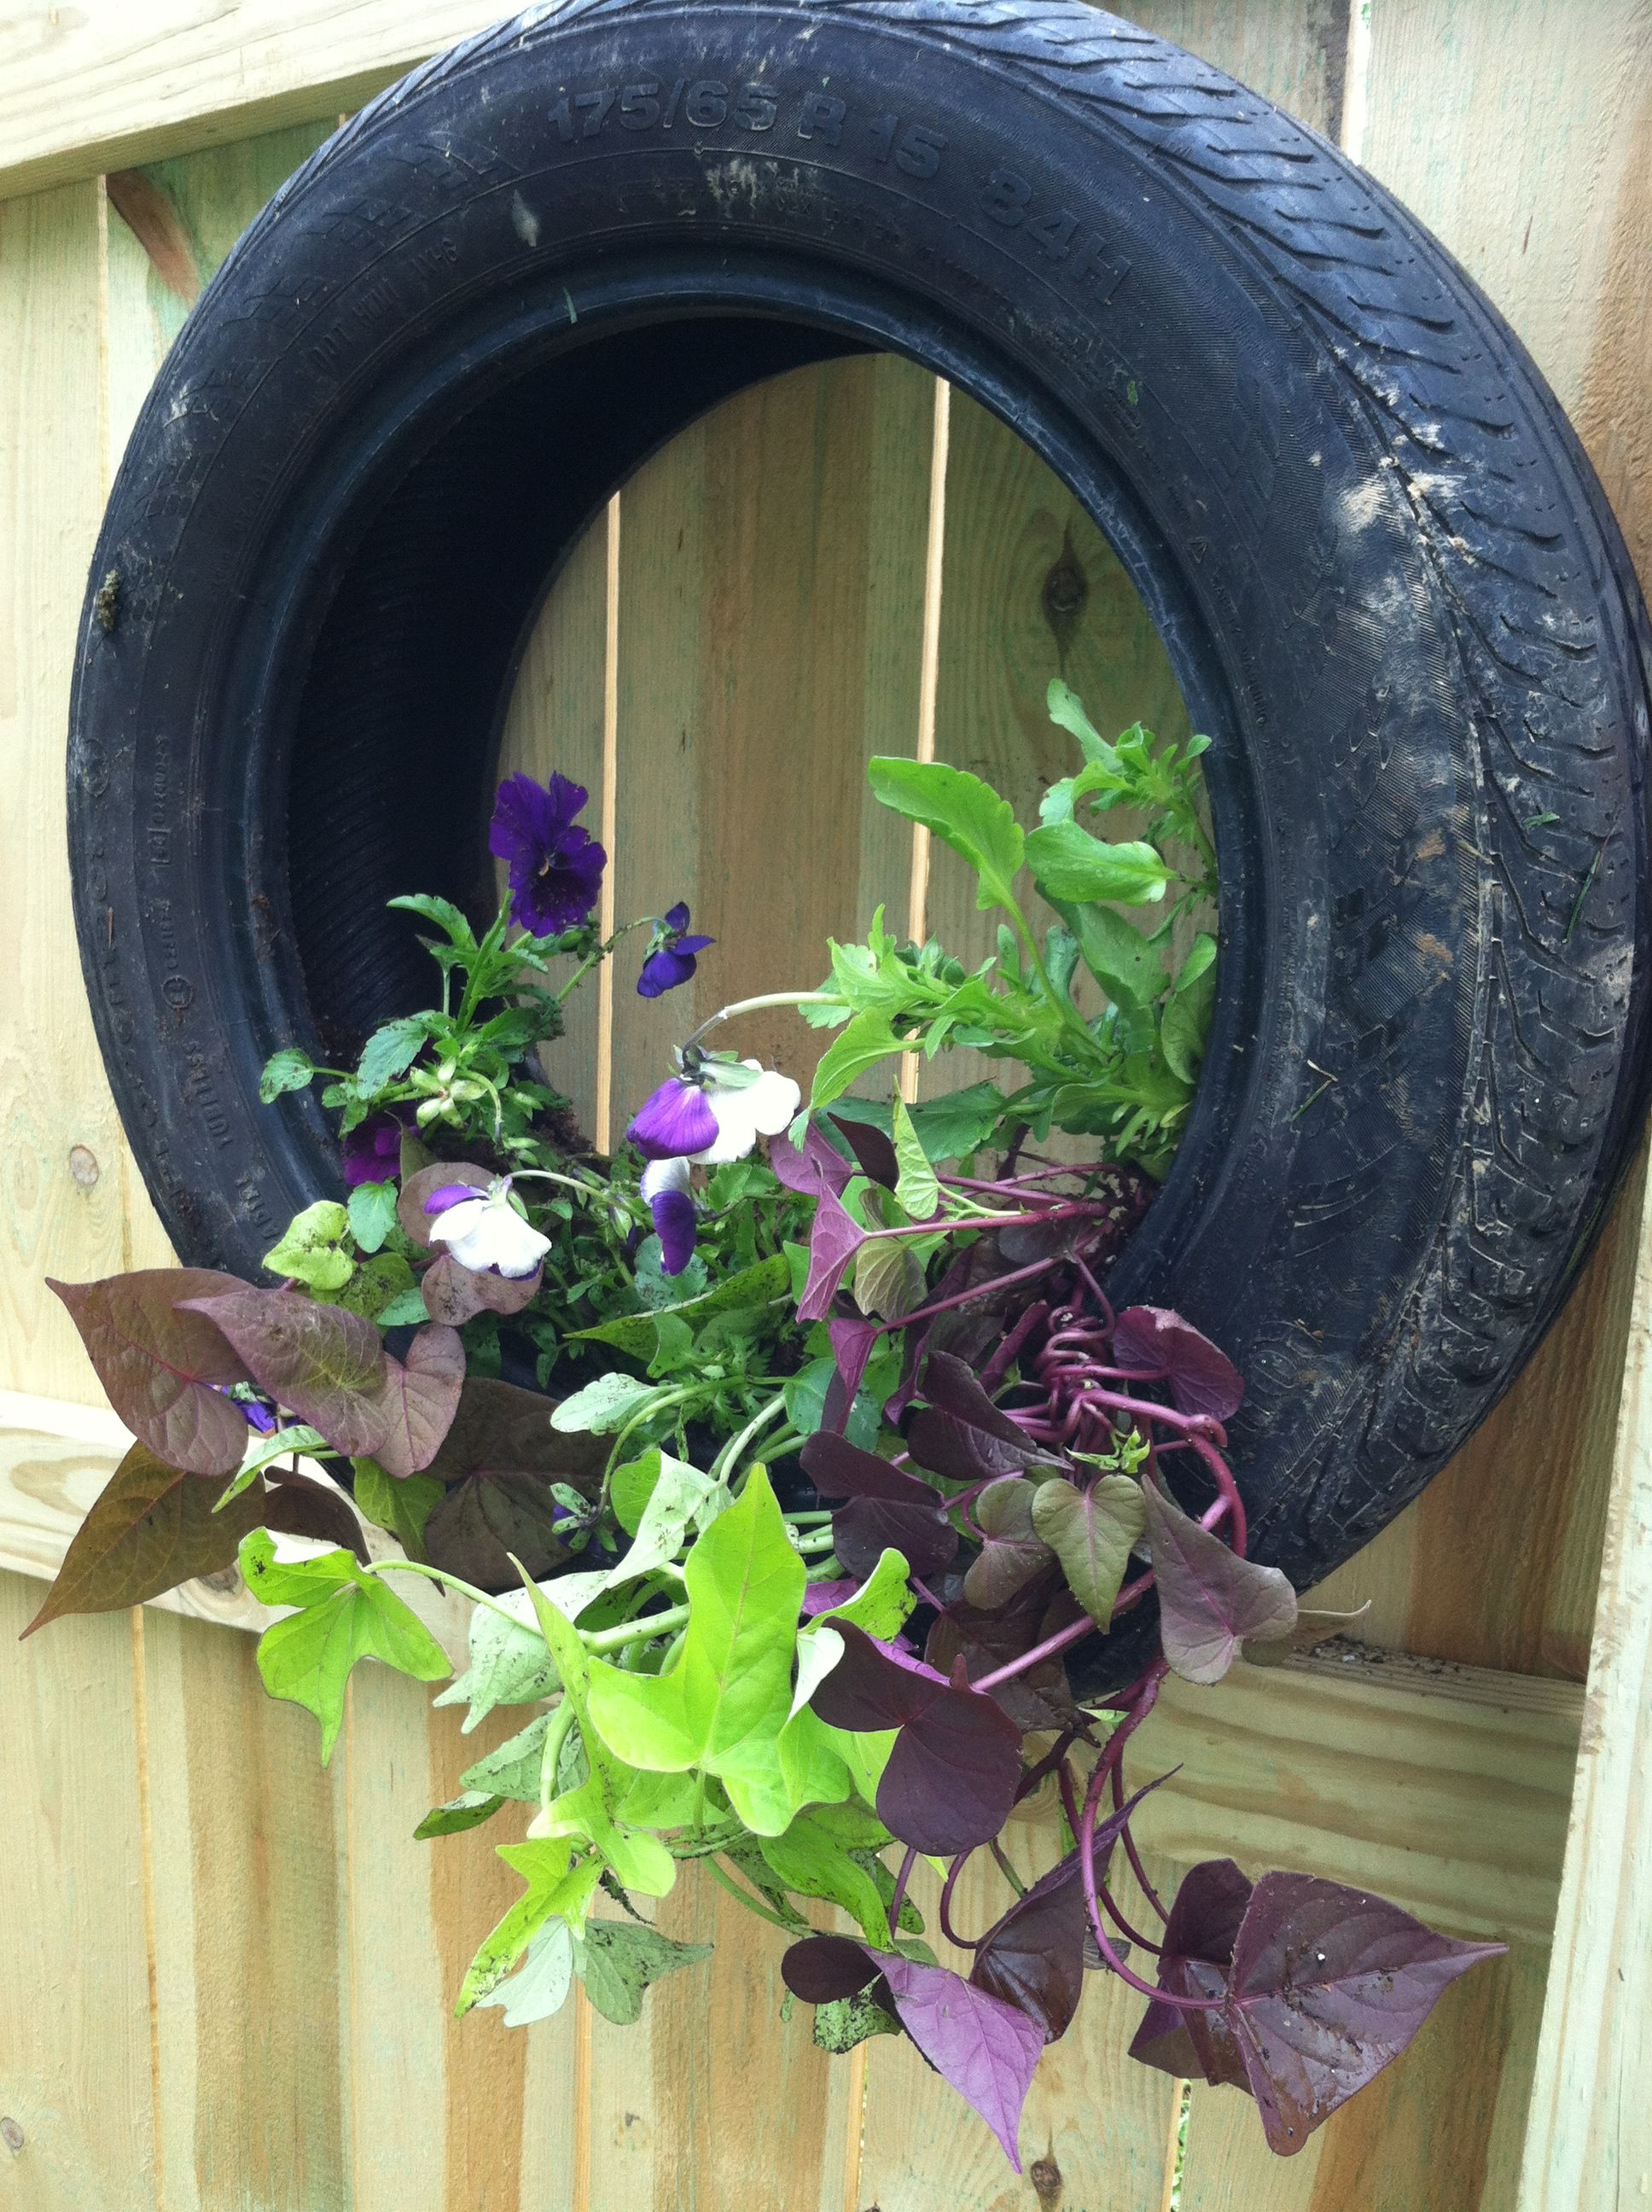 Old tire new planter upcycle old tires pinterest - Planters made from old tires ...